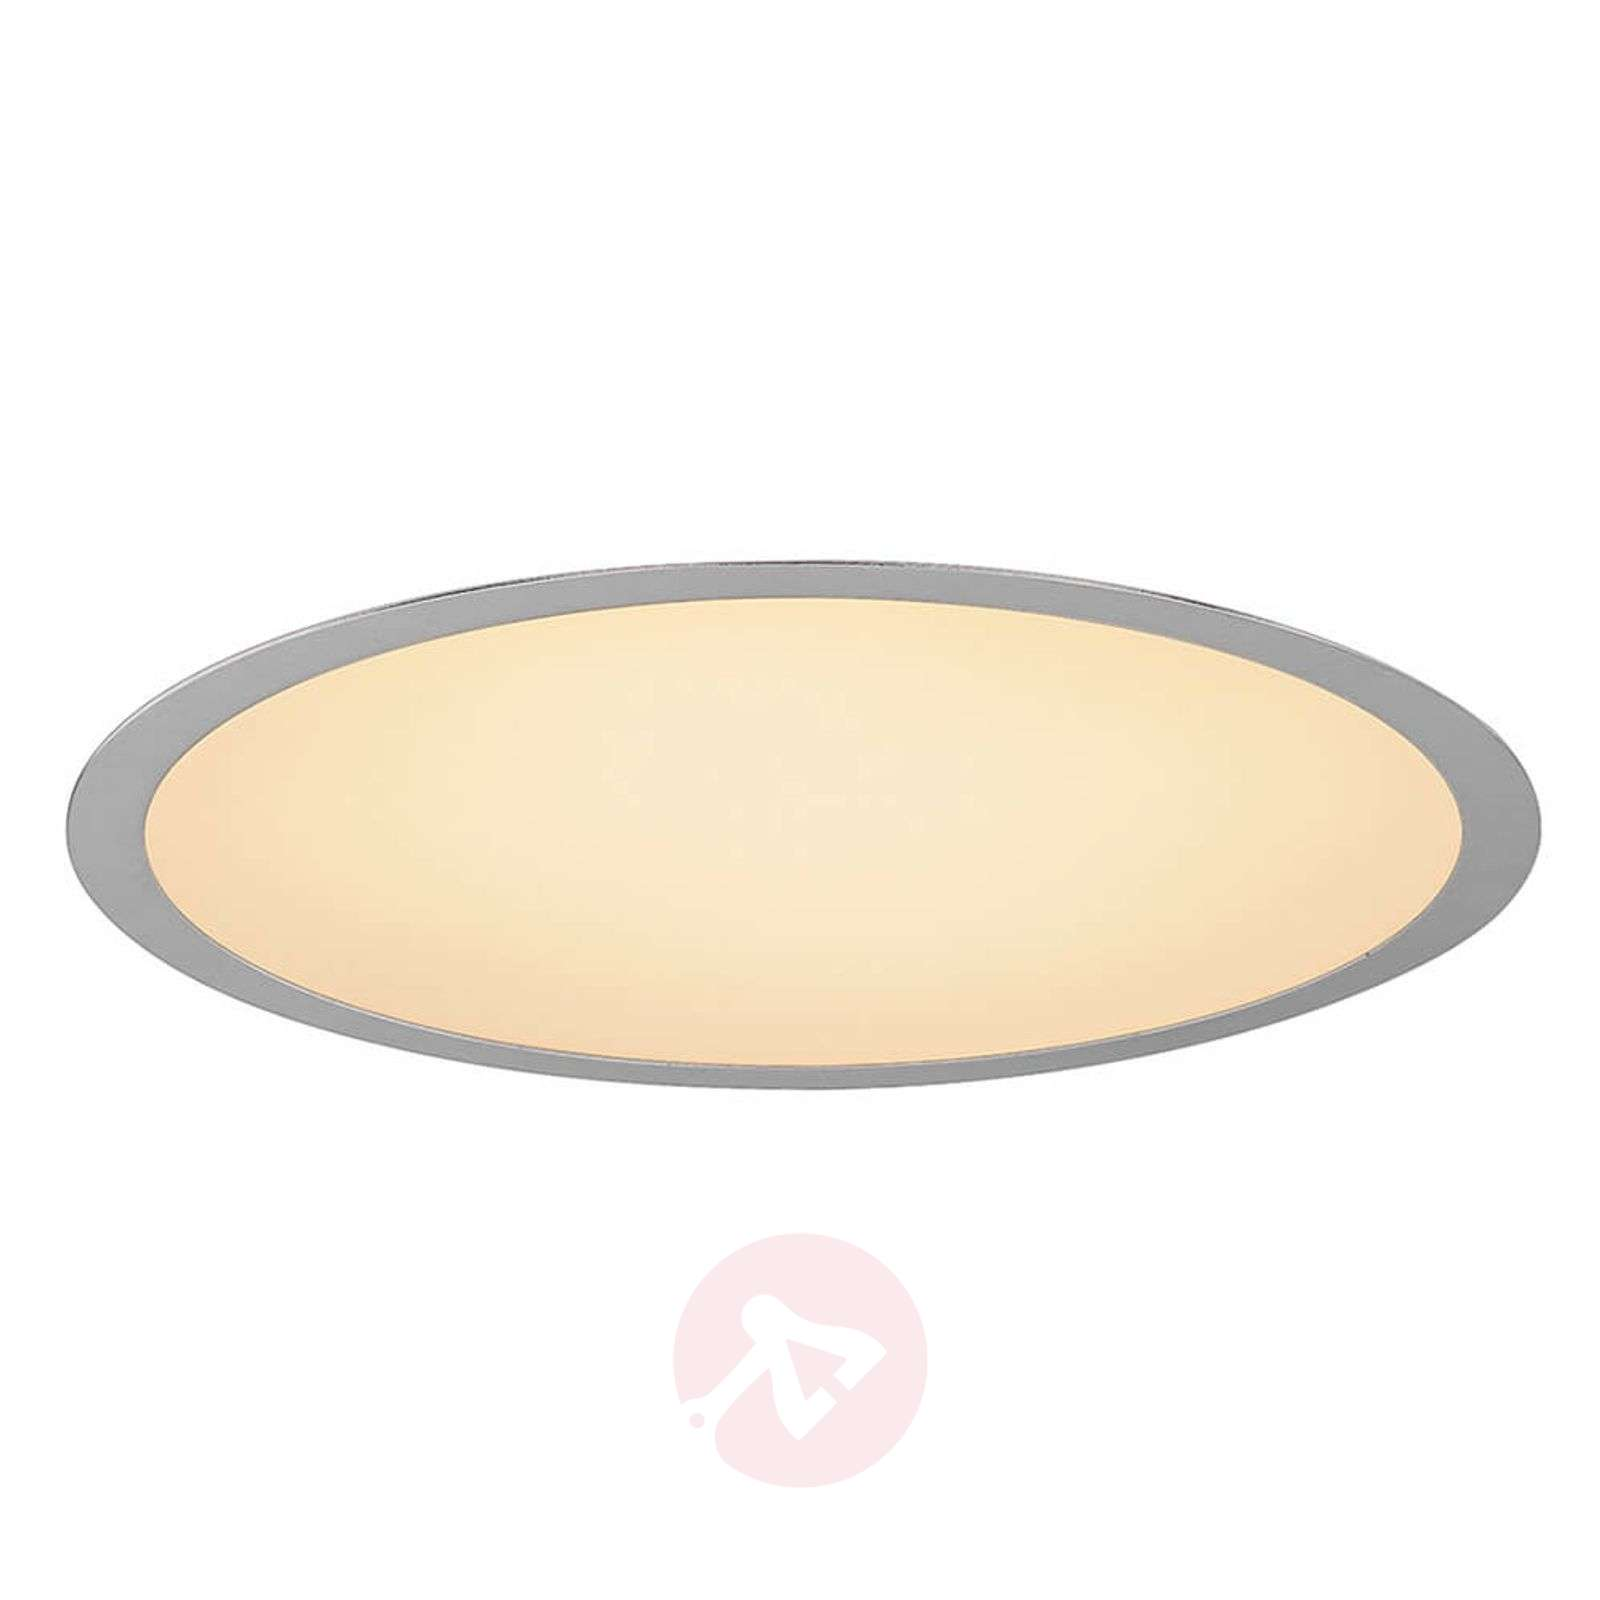 Recessed ceiling light led medo silver grey frame lights recessed ceiling light led medo silver grey frame 5504780 01 mozeypictures Gallery